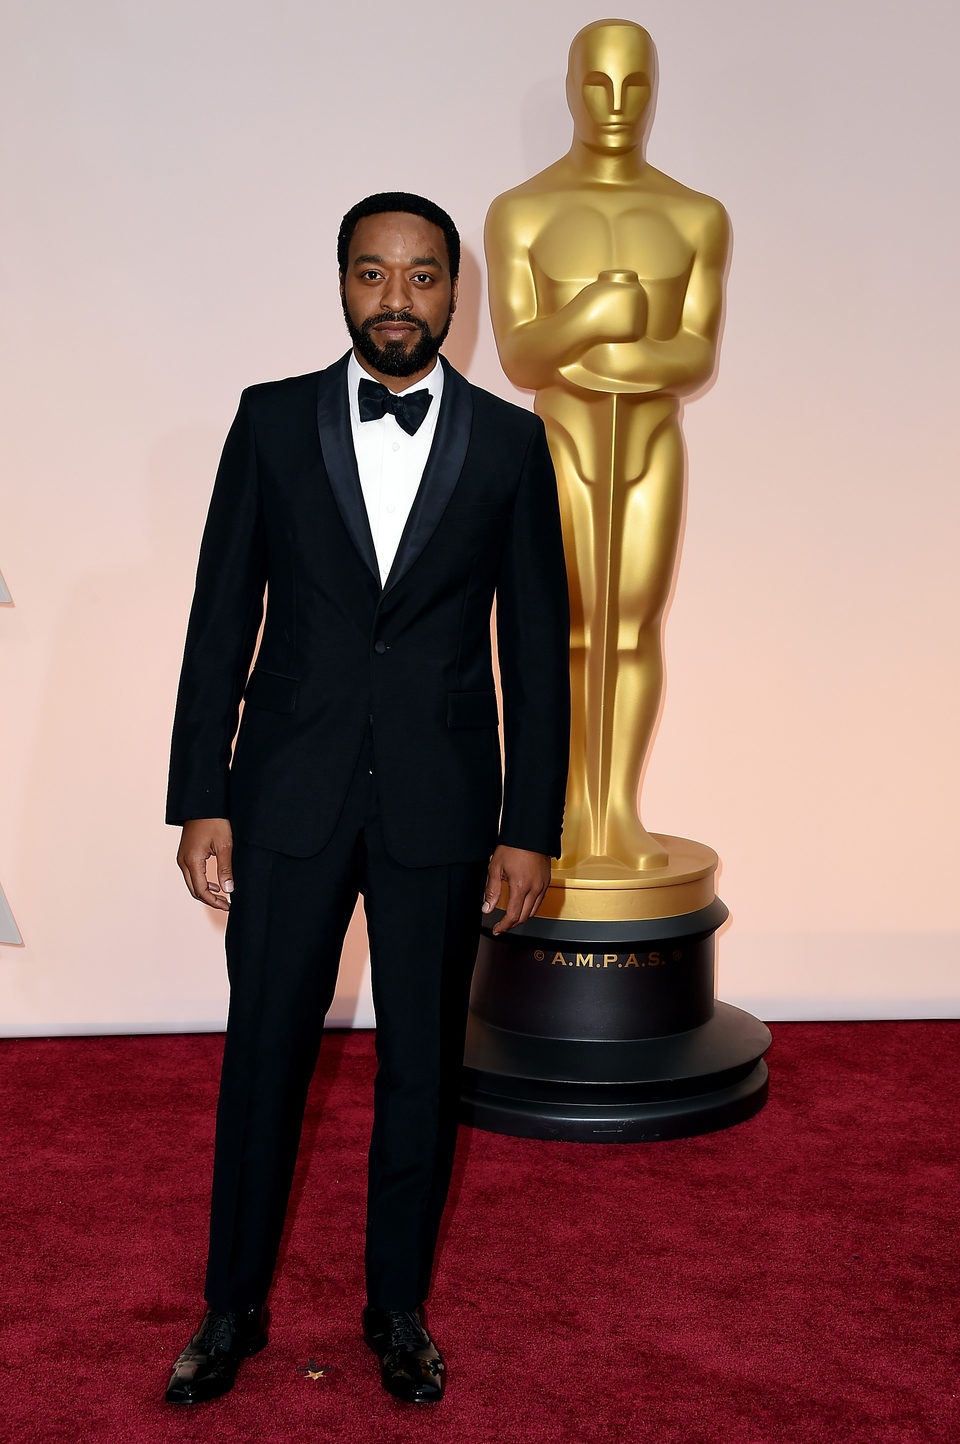 Chiwetel Ejiofor poses at the red carpet of the Oscar 2015